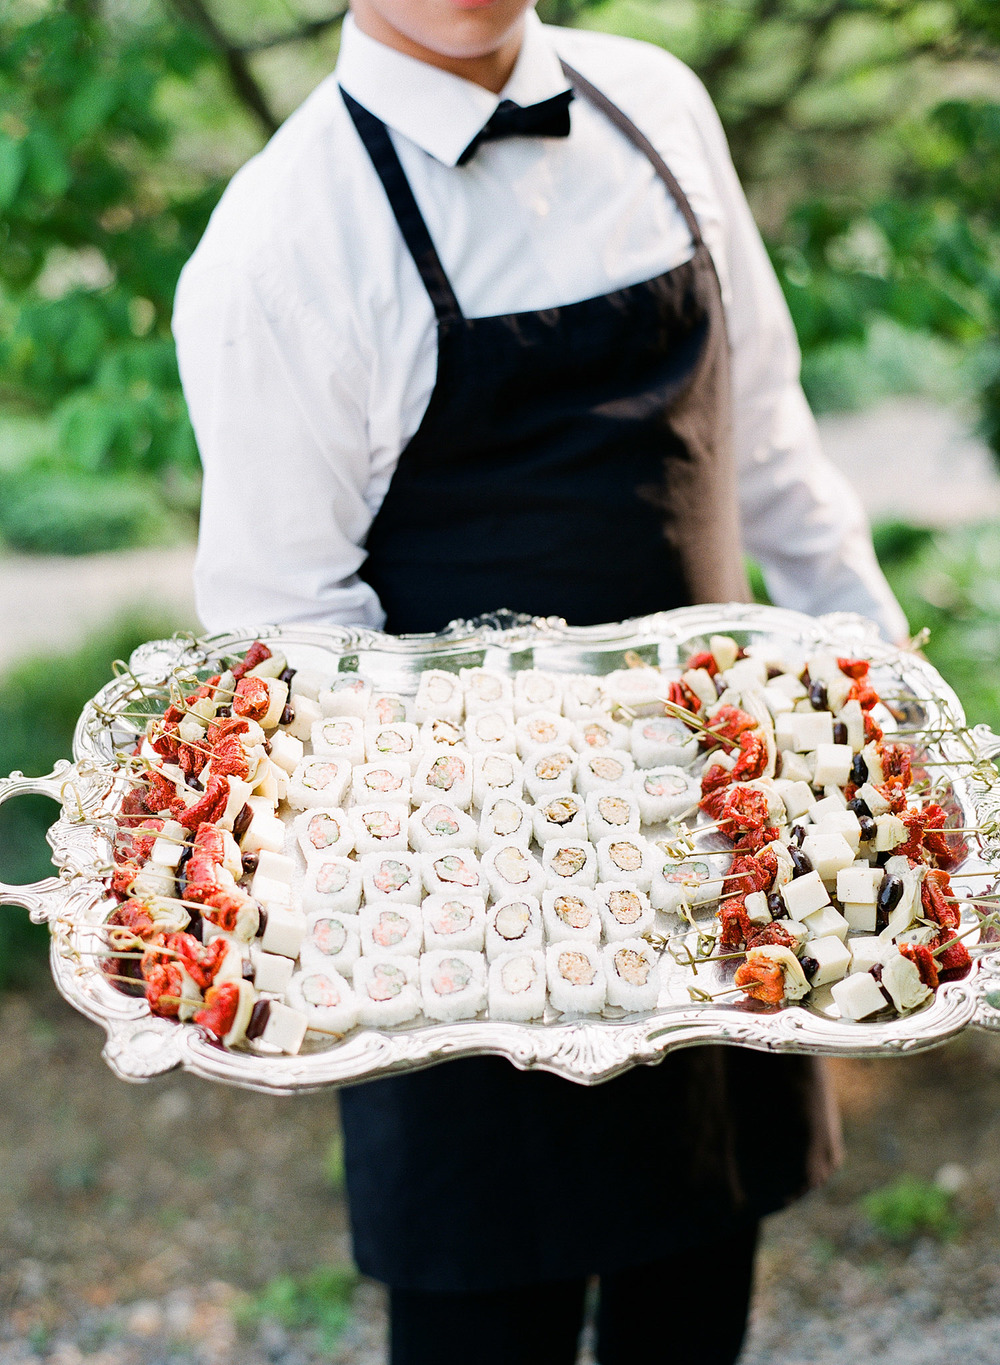 hors d'oeuvres of sushi are served at the cocktail hour of this springtime wedding at Northwind Perennial gardens - a wisconsin wedding venue - as a film wedding photographer Lexia Frank photographs this destination wedding on film